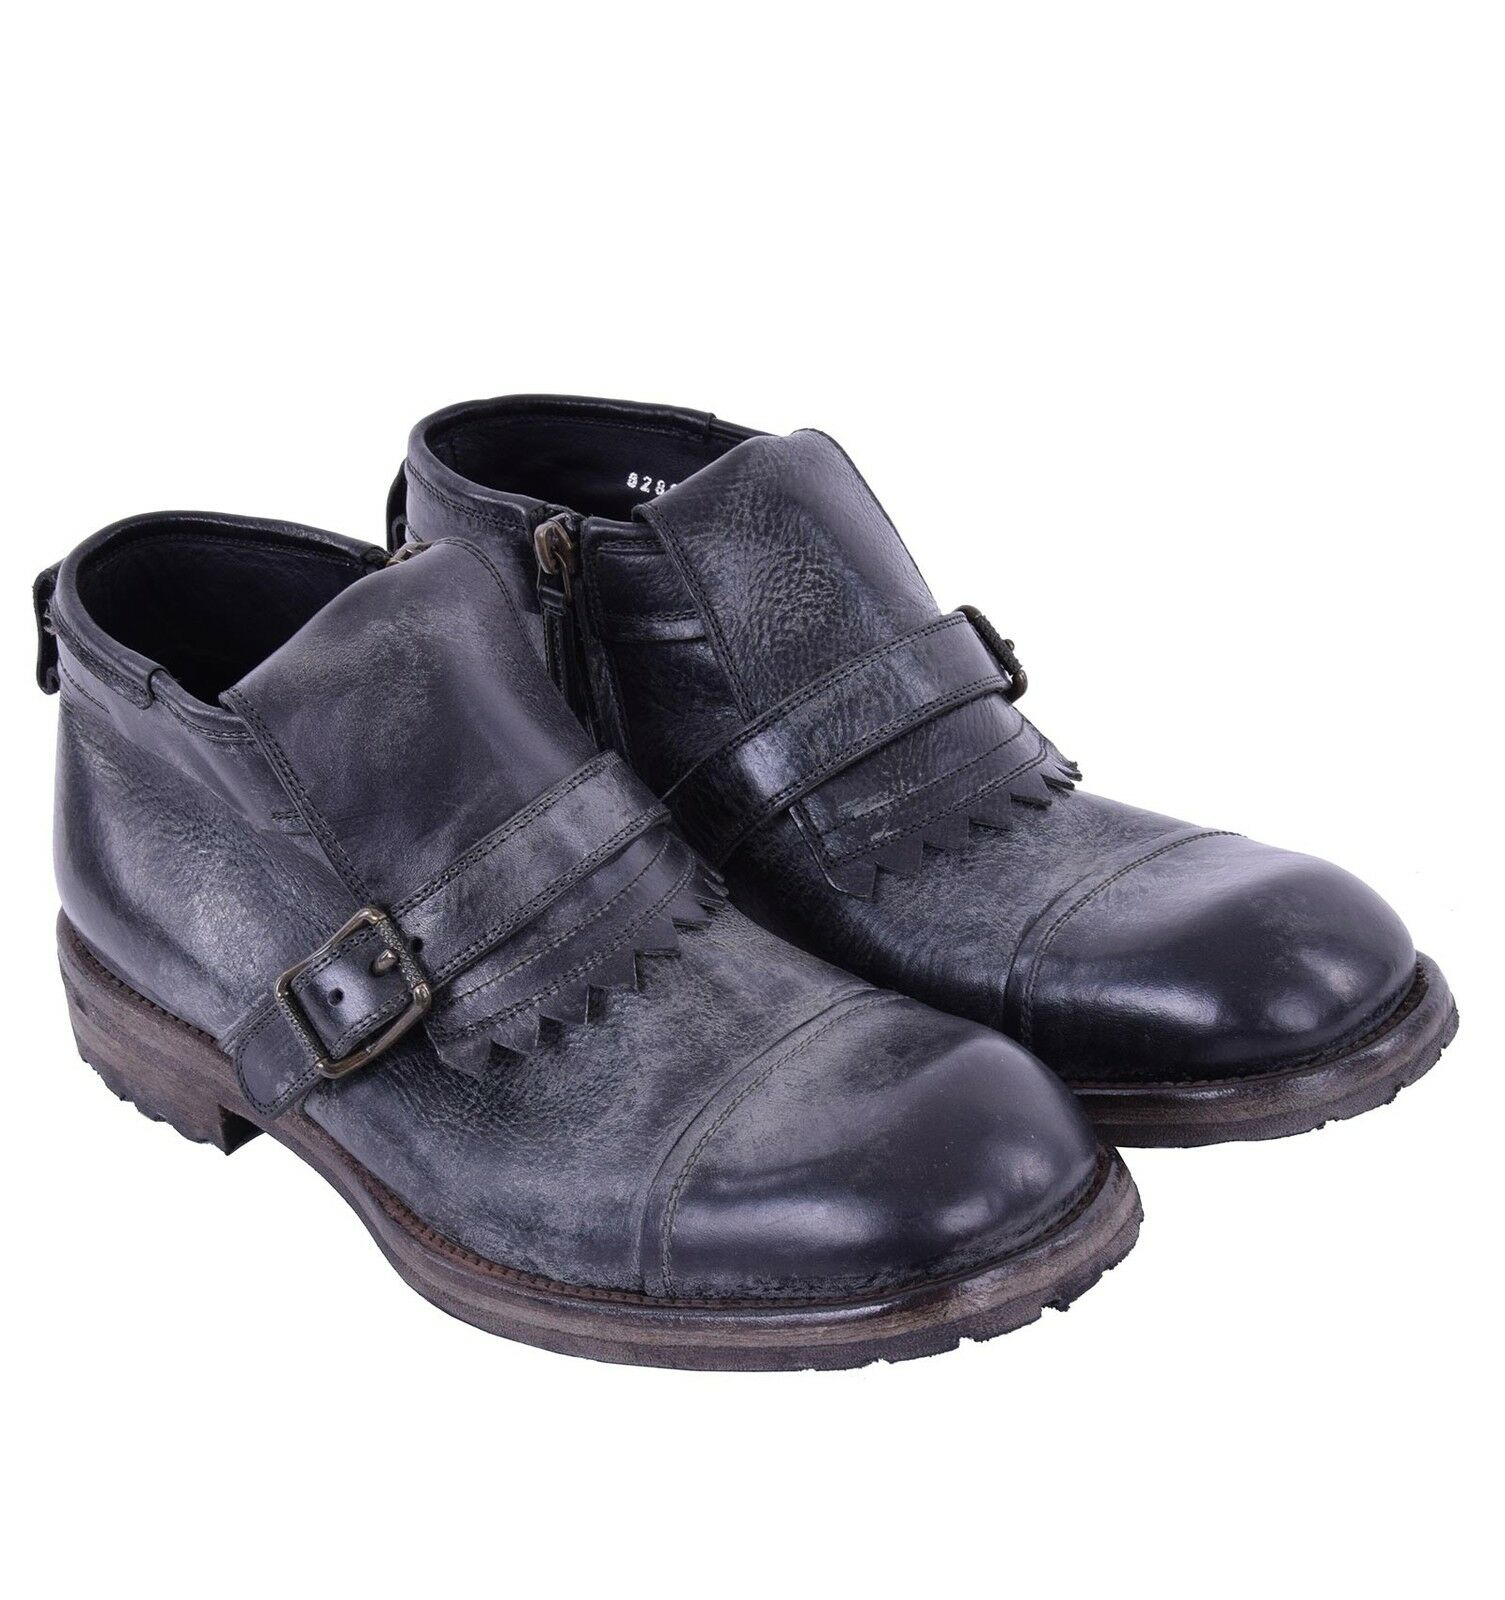 DOLCE /& GABBANA Siracusa Bison Leather Boots Shoes Black 03834